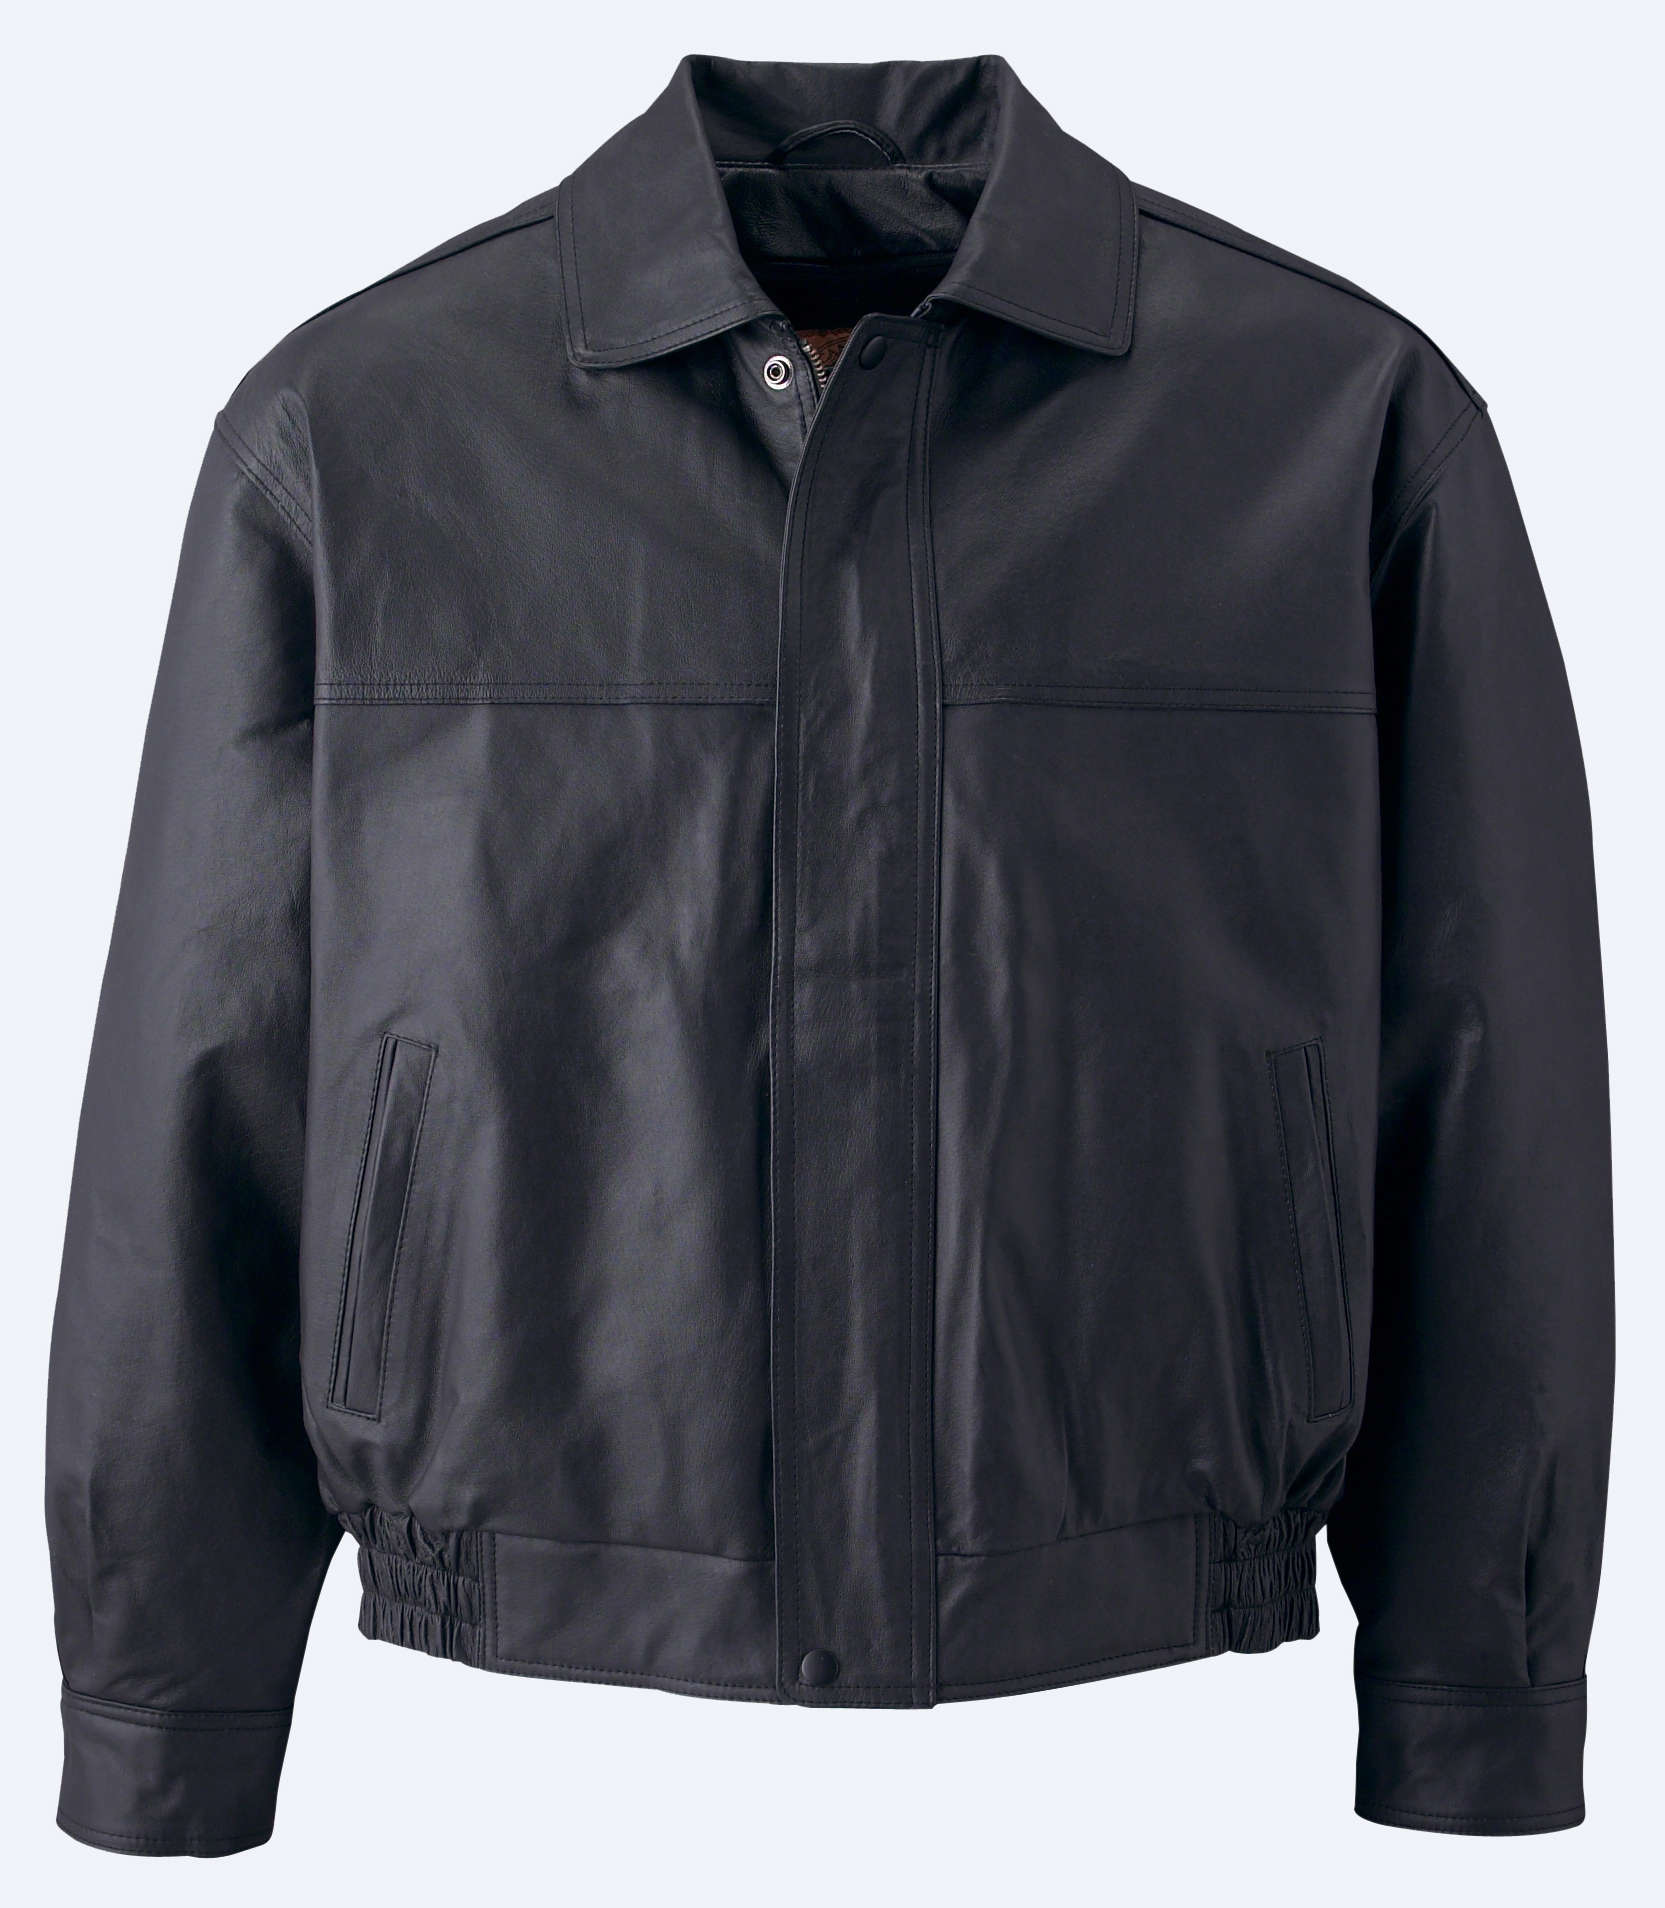 Canada Sportswear Men's Nappa Leather Bomber Jacket - Xpromo.ca